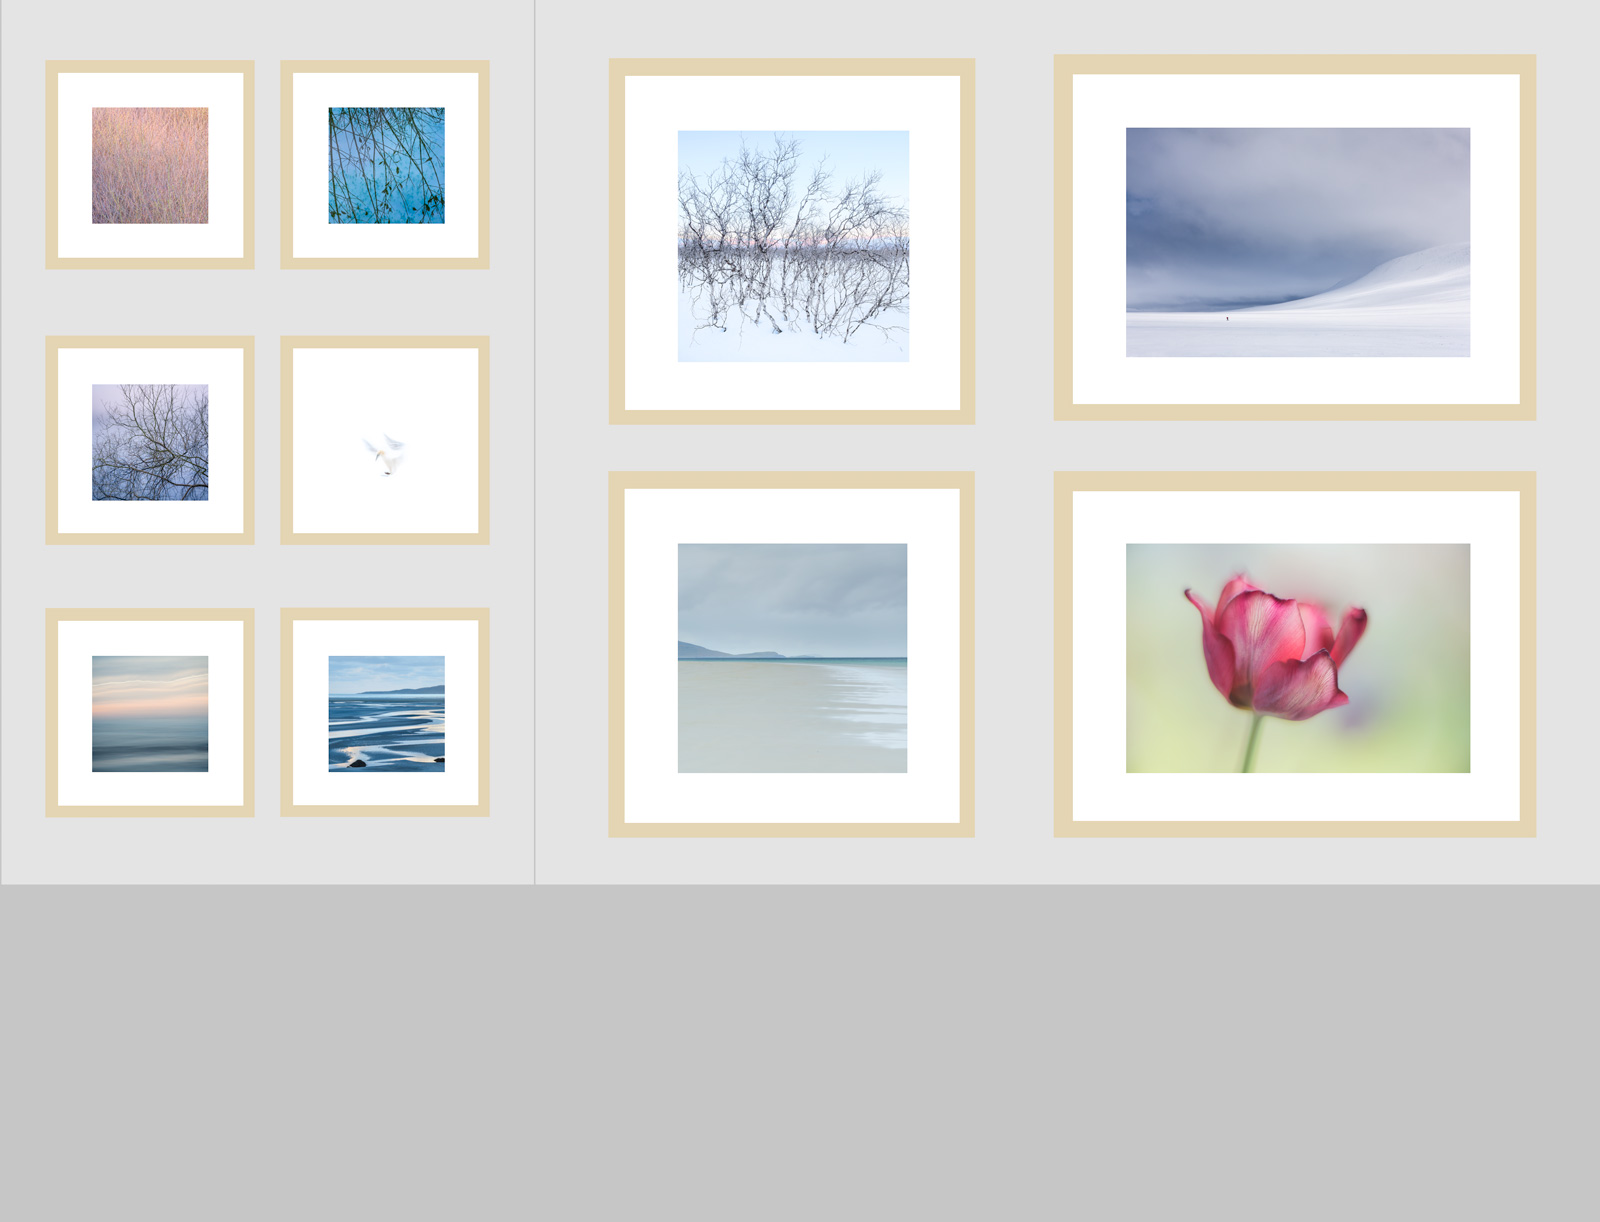 My panel of photographs for display at the Guildford Arts Festival